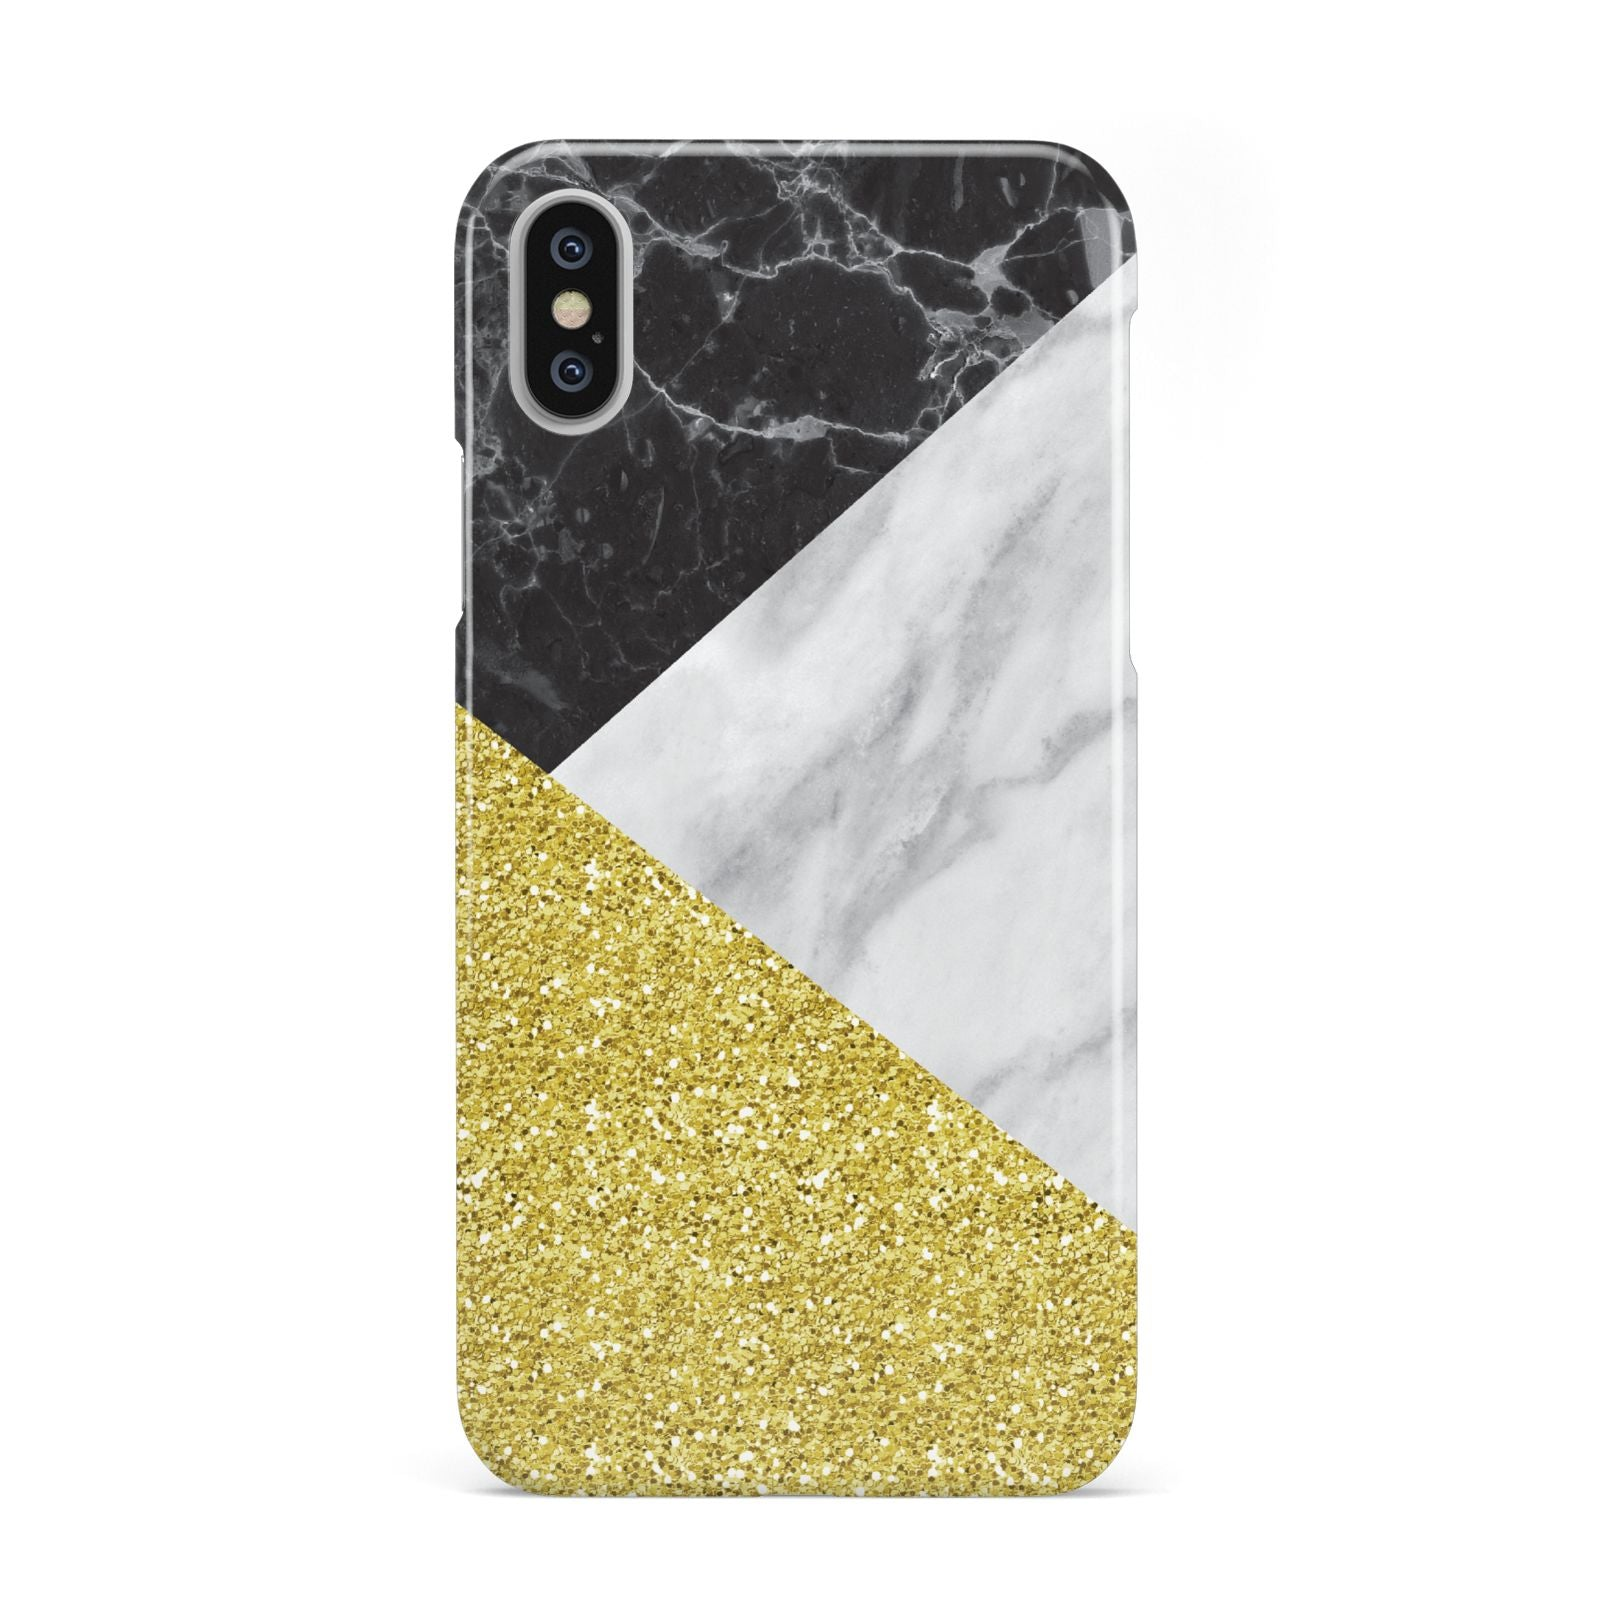 dca2956956e3f5 Marble Black Gold Glitter Apple iPhone Case | Dyefor